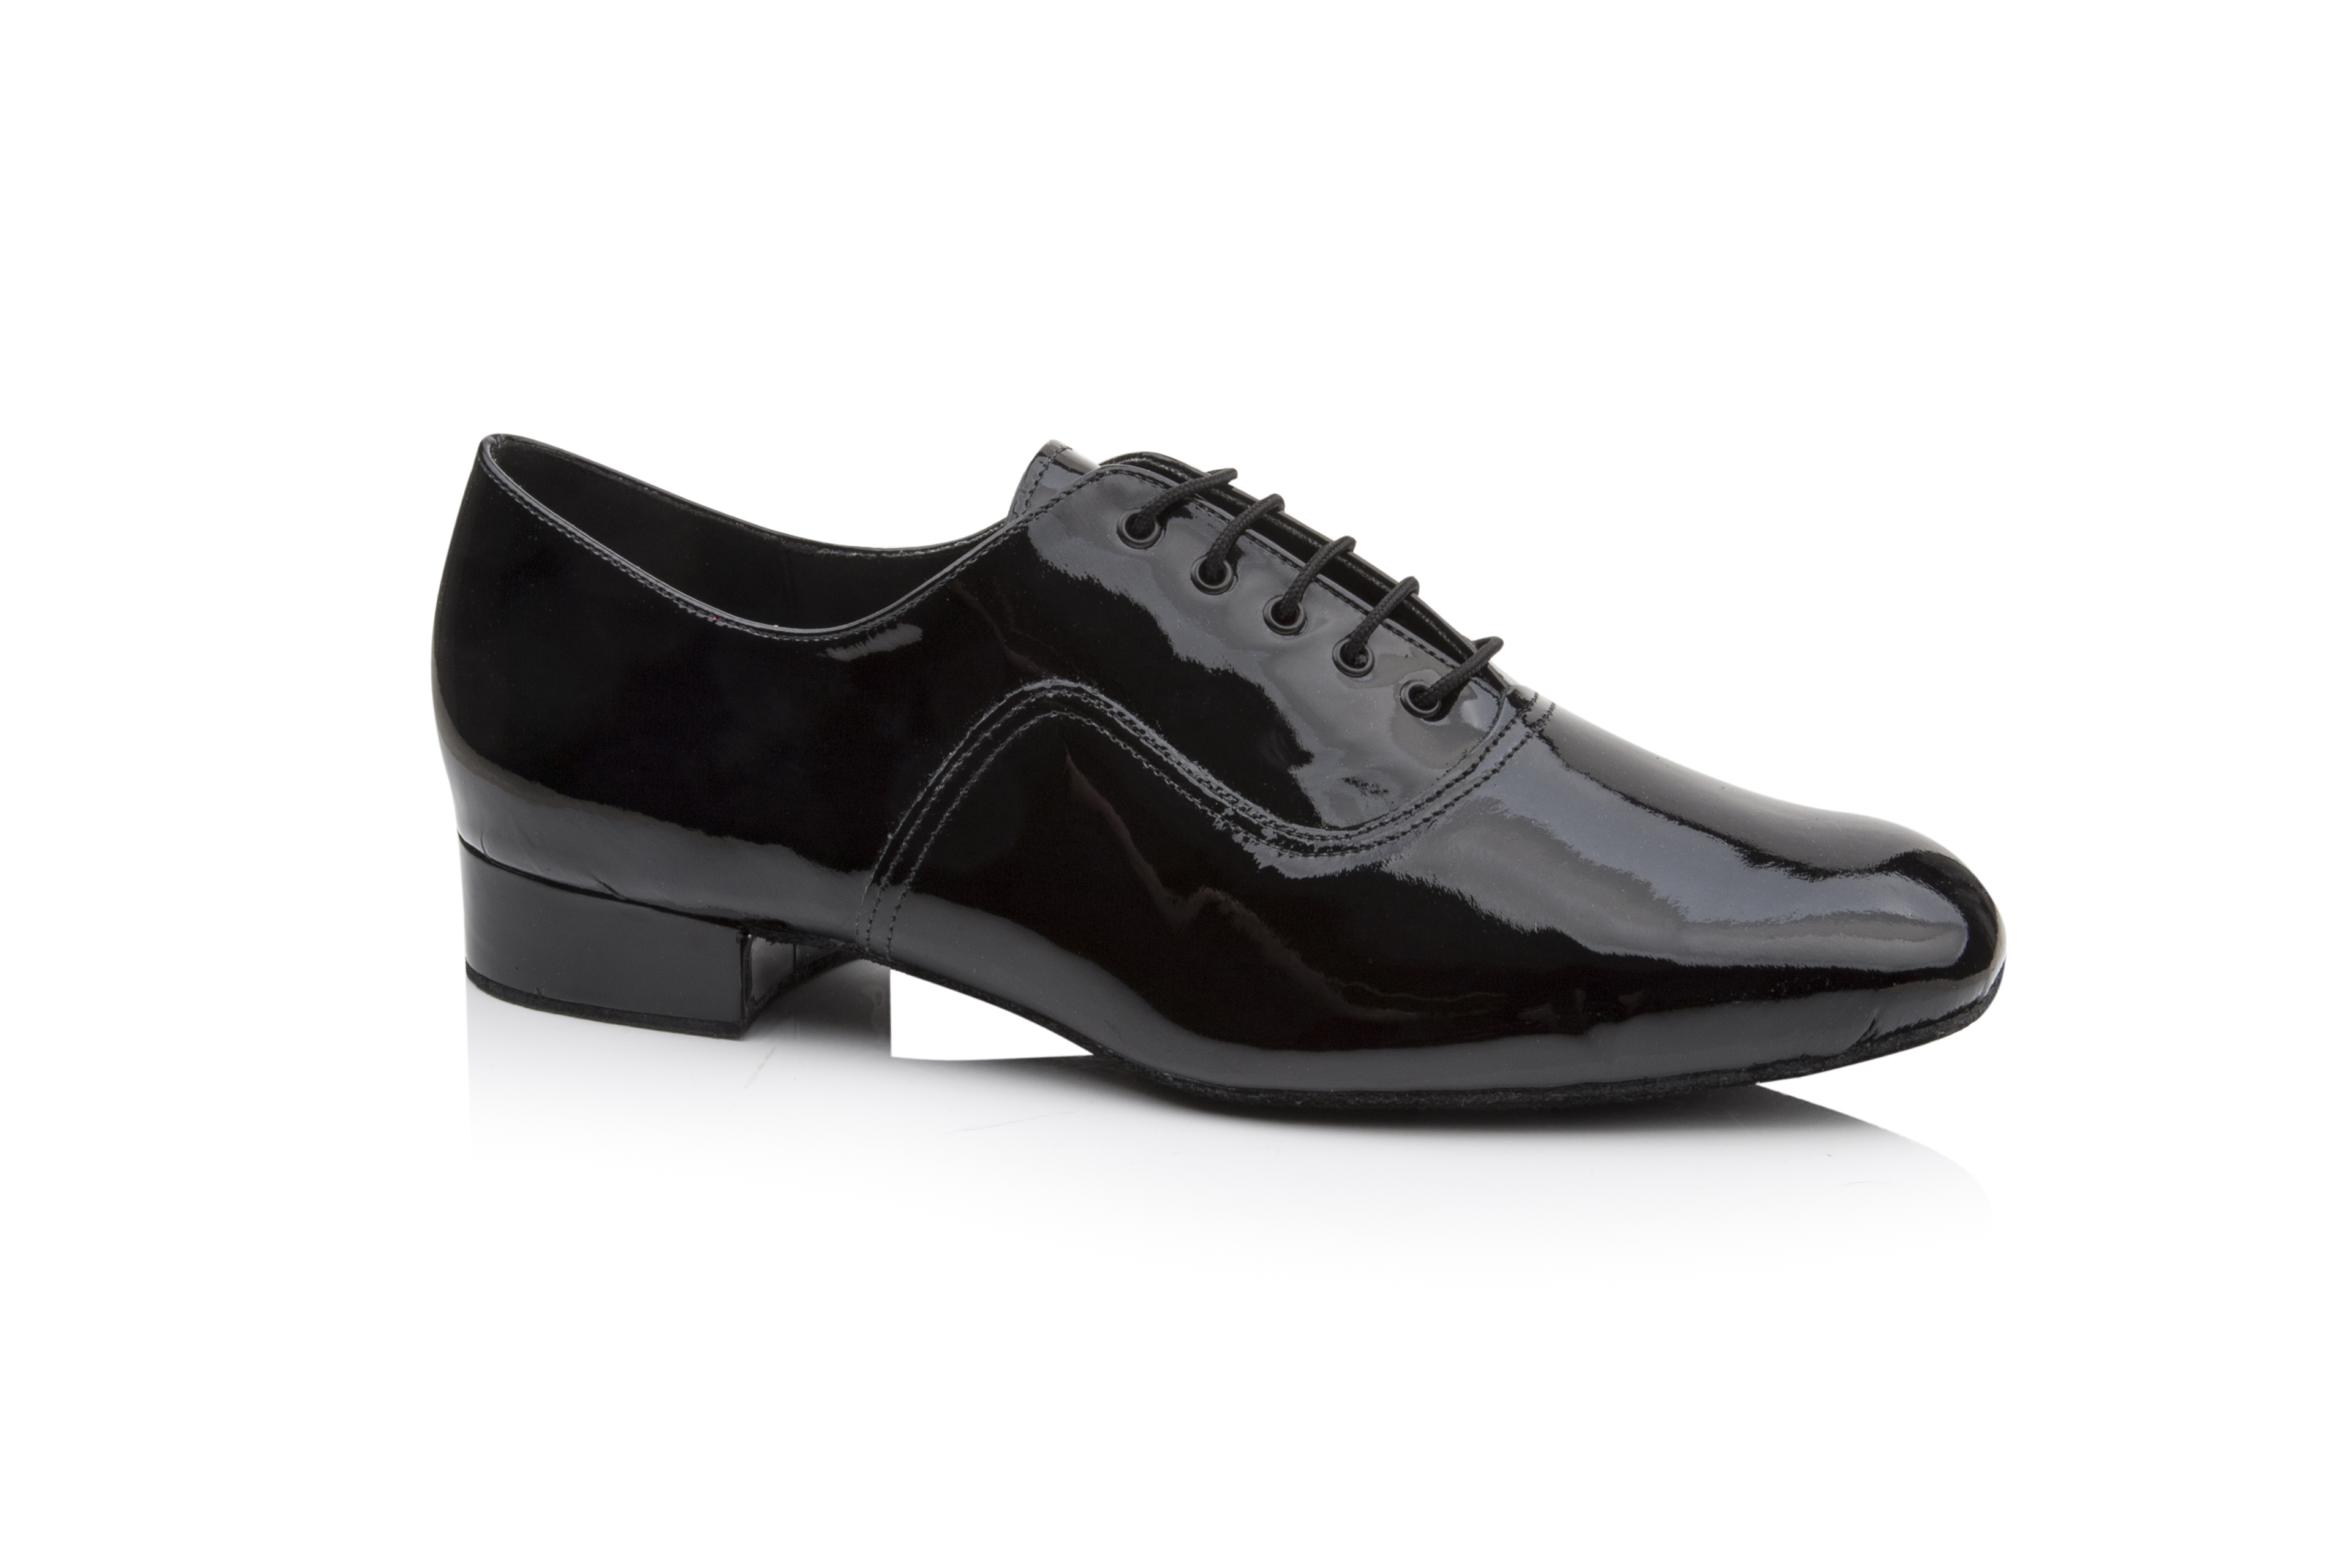 Freed Astaire in Black Patent